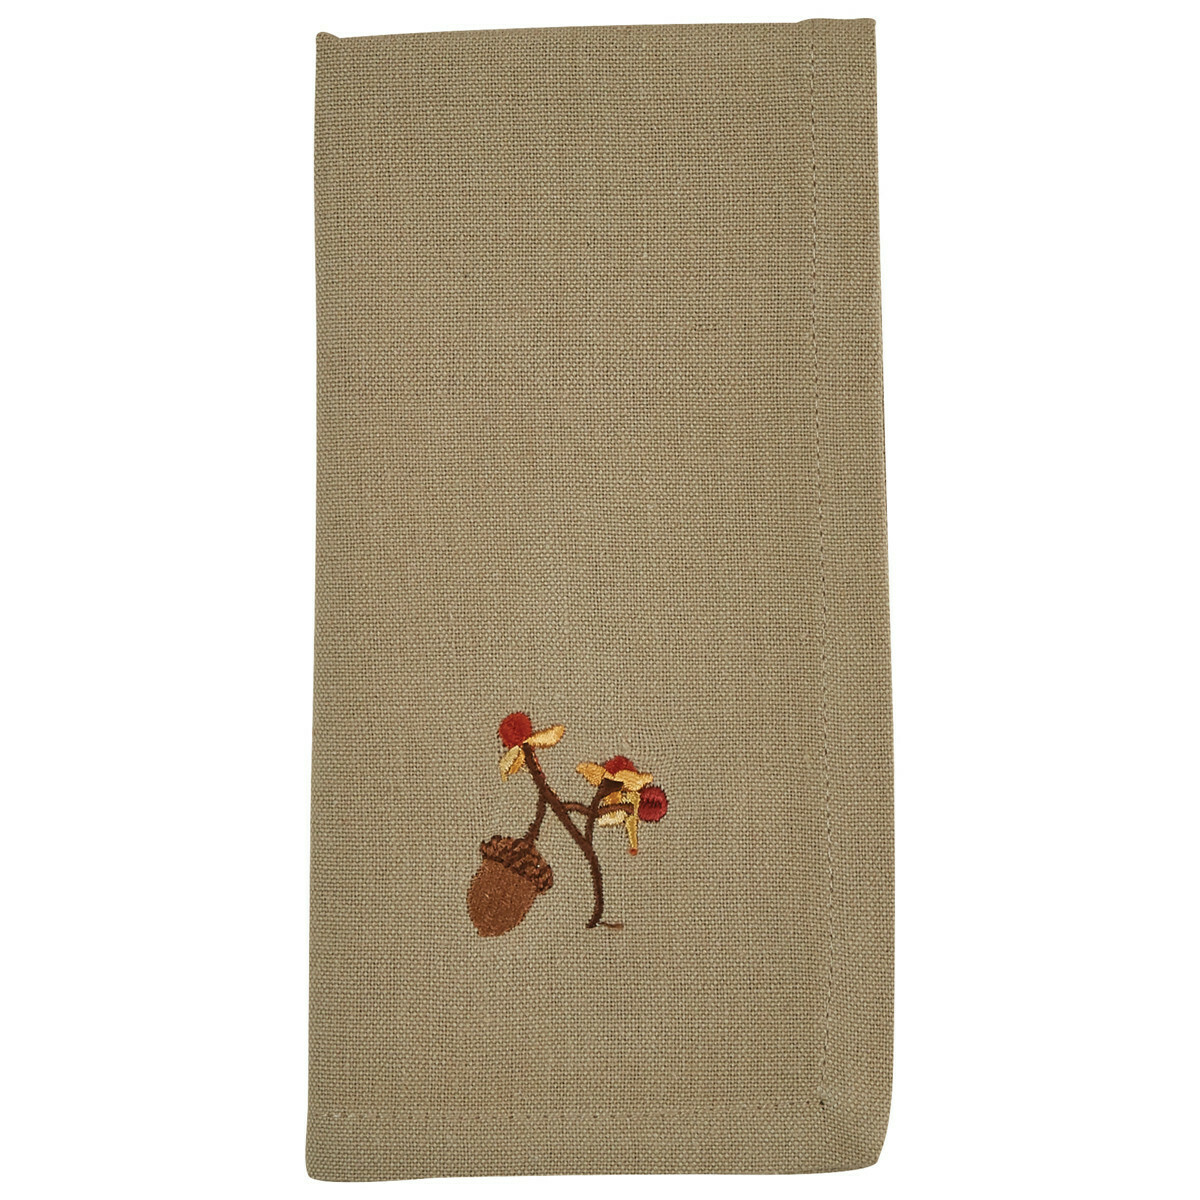 Bittersweet and Acorns Embroidered Napkin